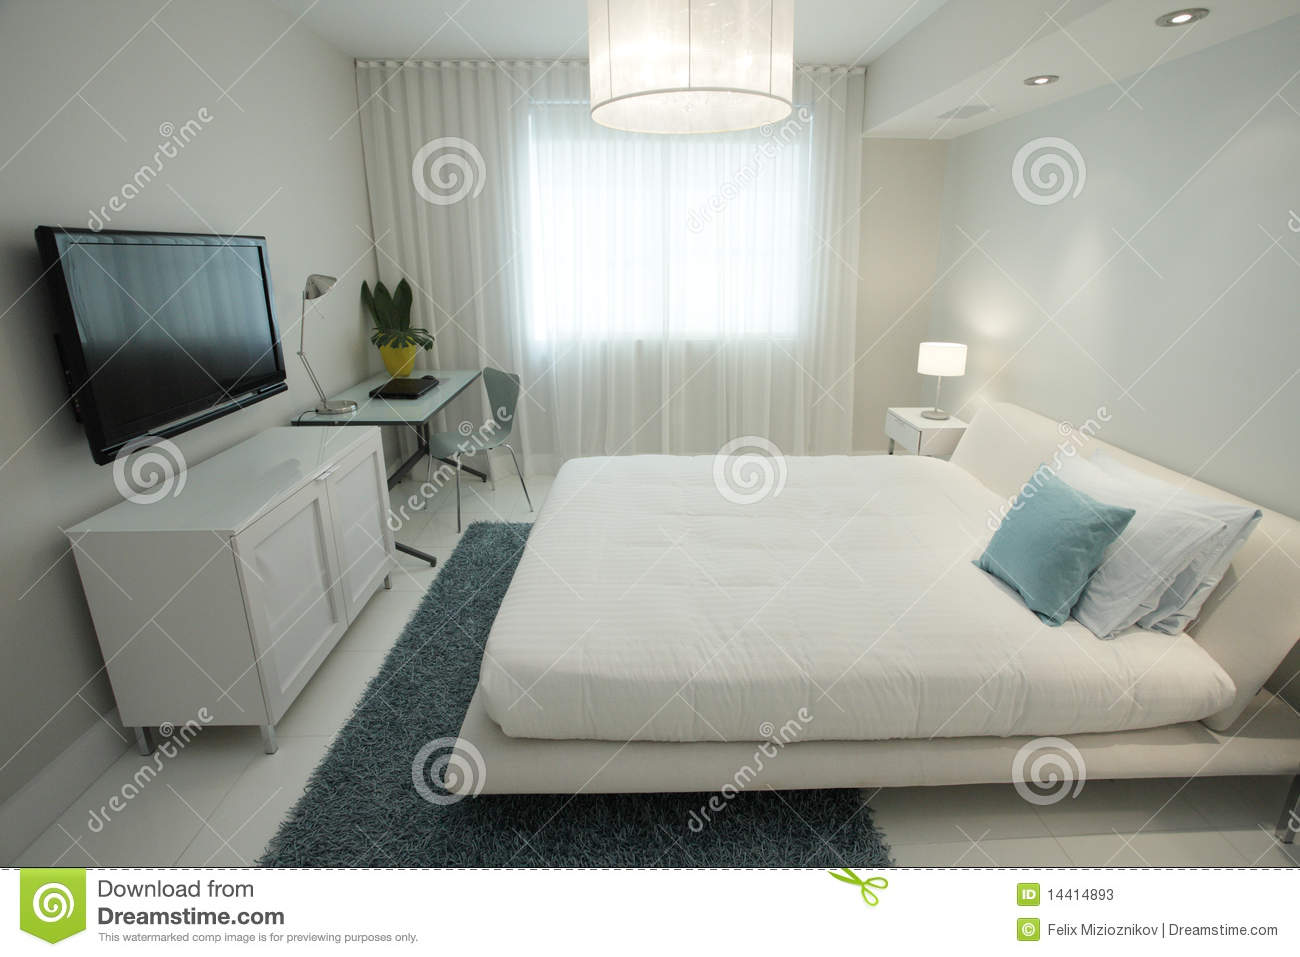 chambre coucher avec une t l vision de hd photos stock image 14414893. Black Bedroom Furniture Sets. Home Design Ideas